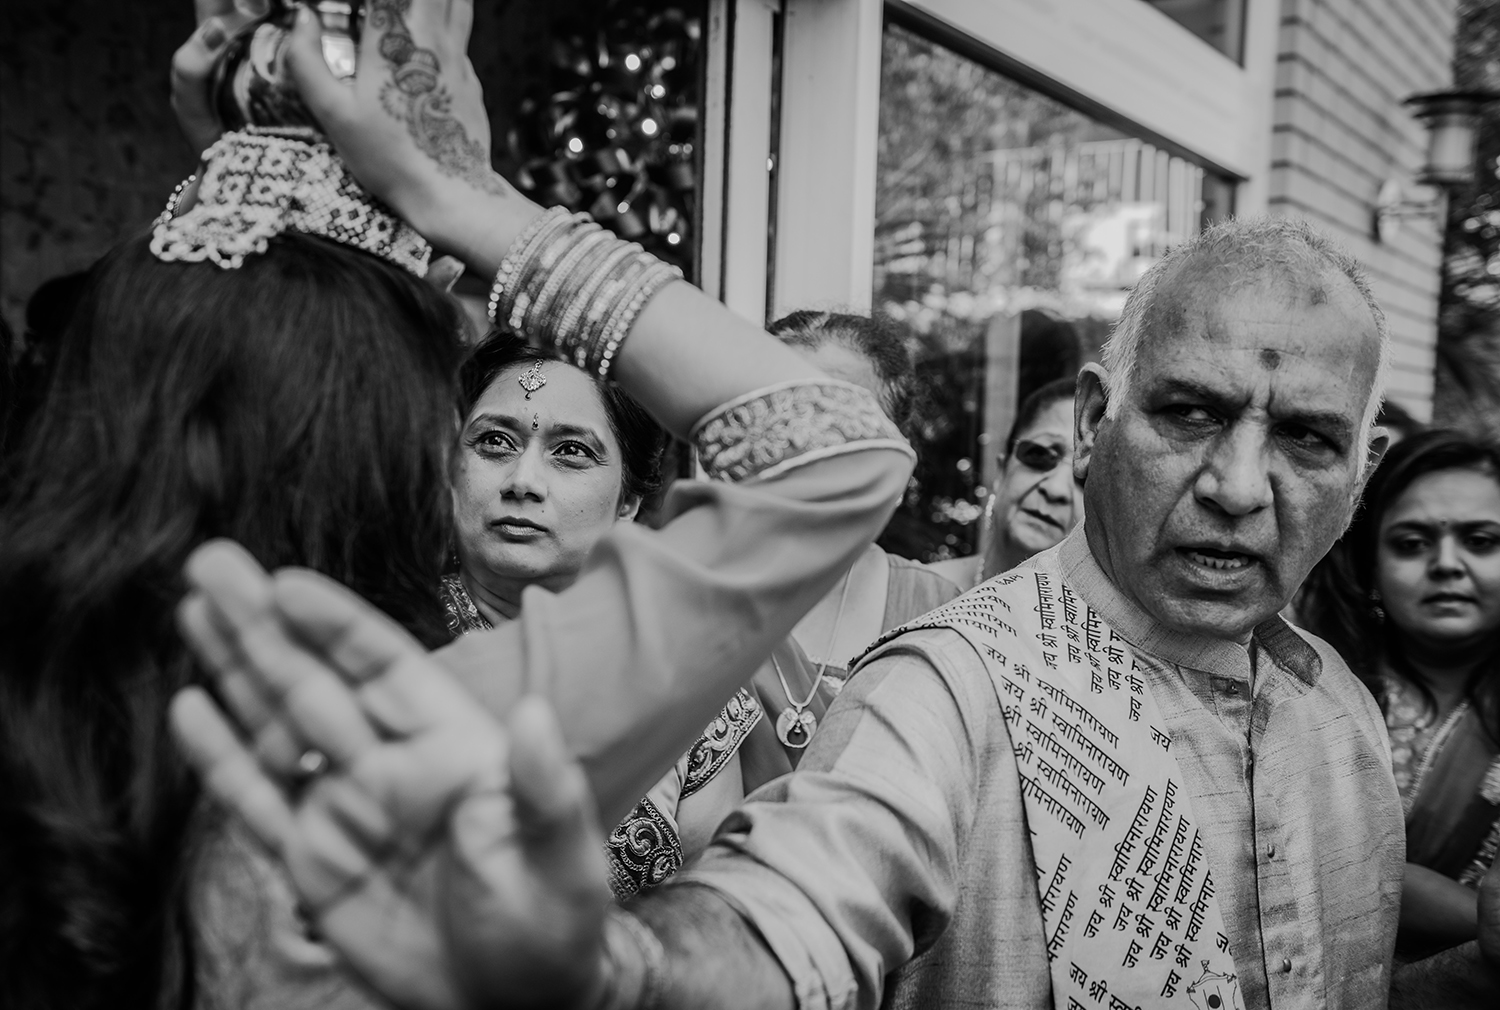 Bw photo during Indian traditions